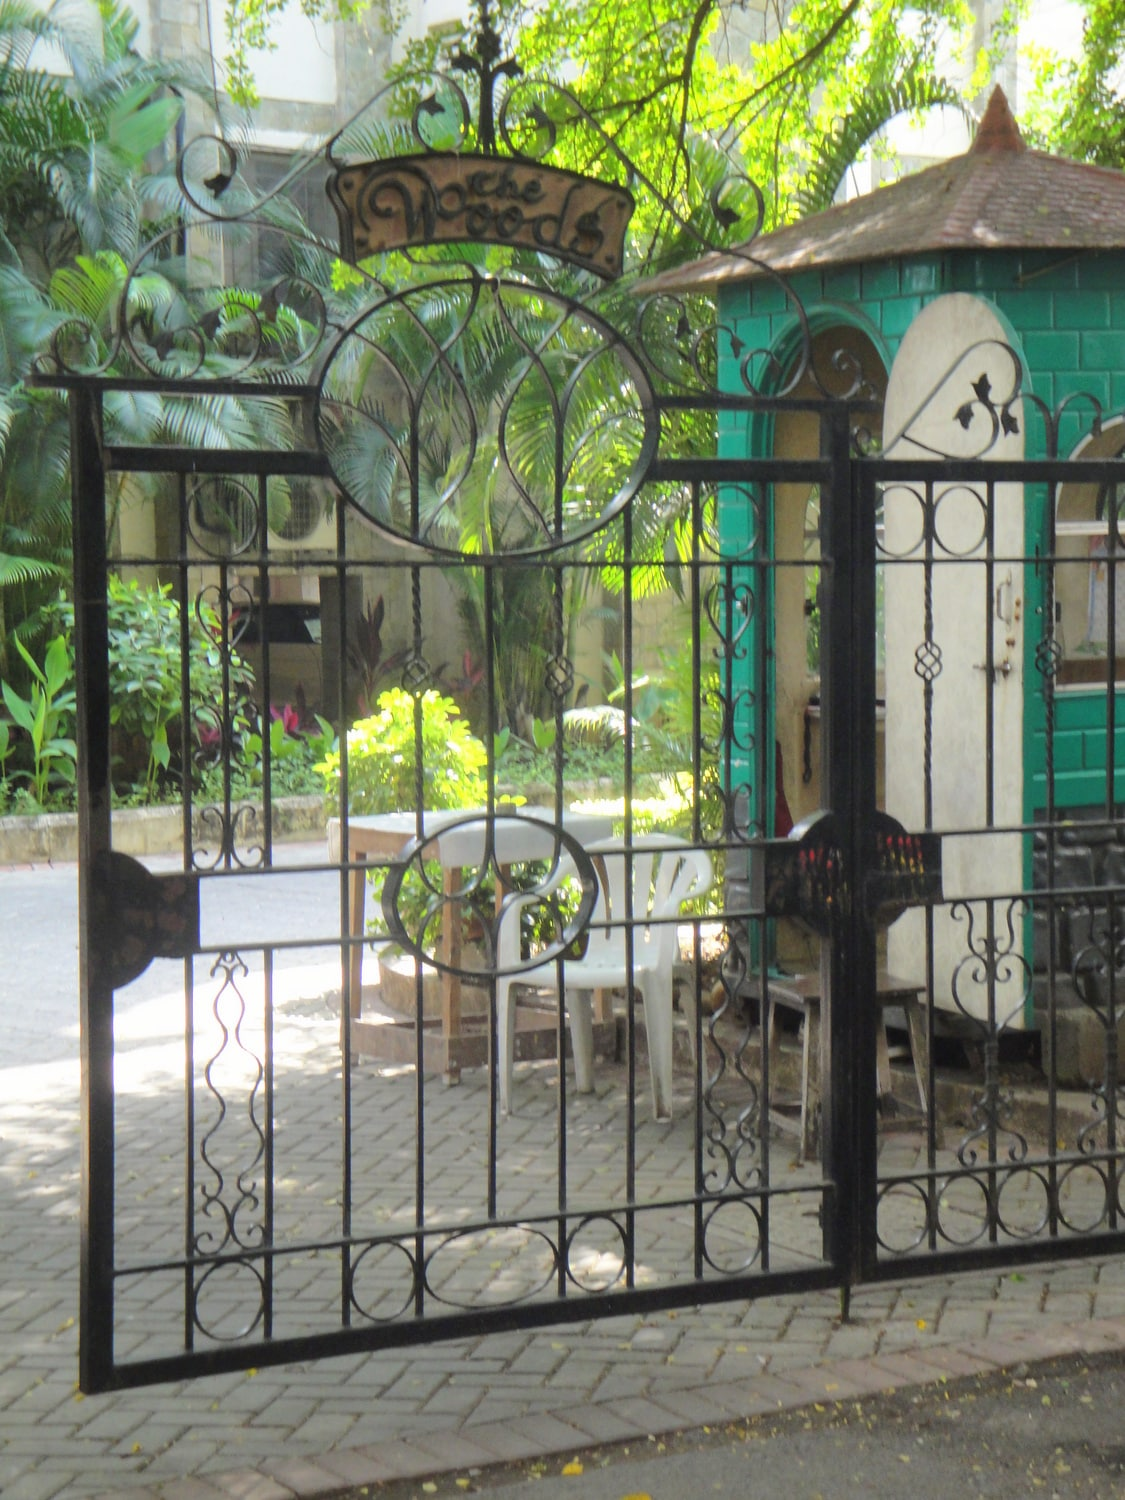 The Apartment is in a gated Society with security